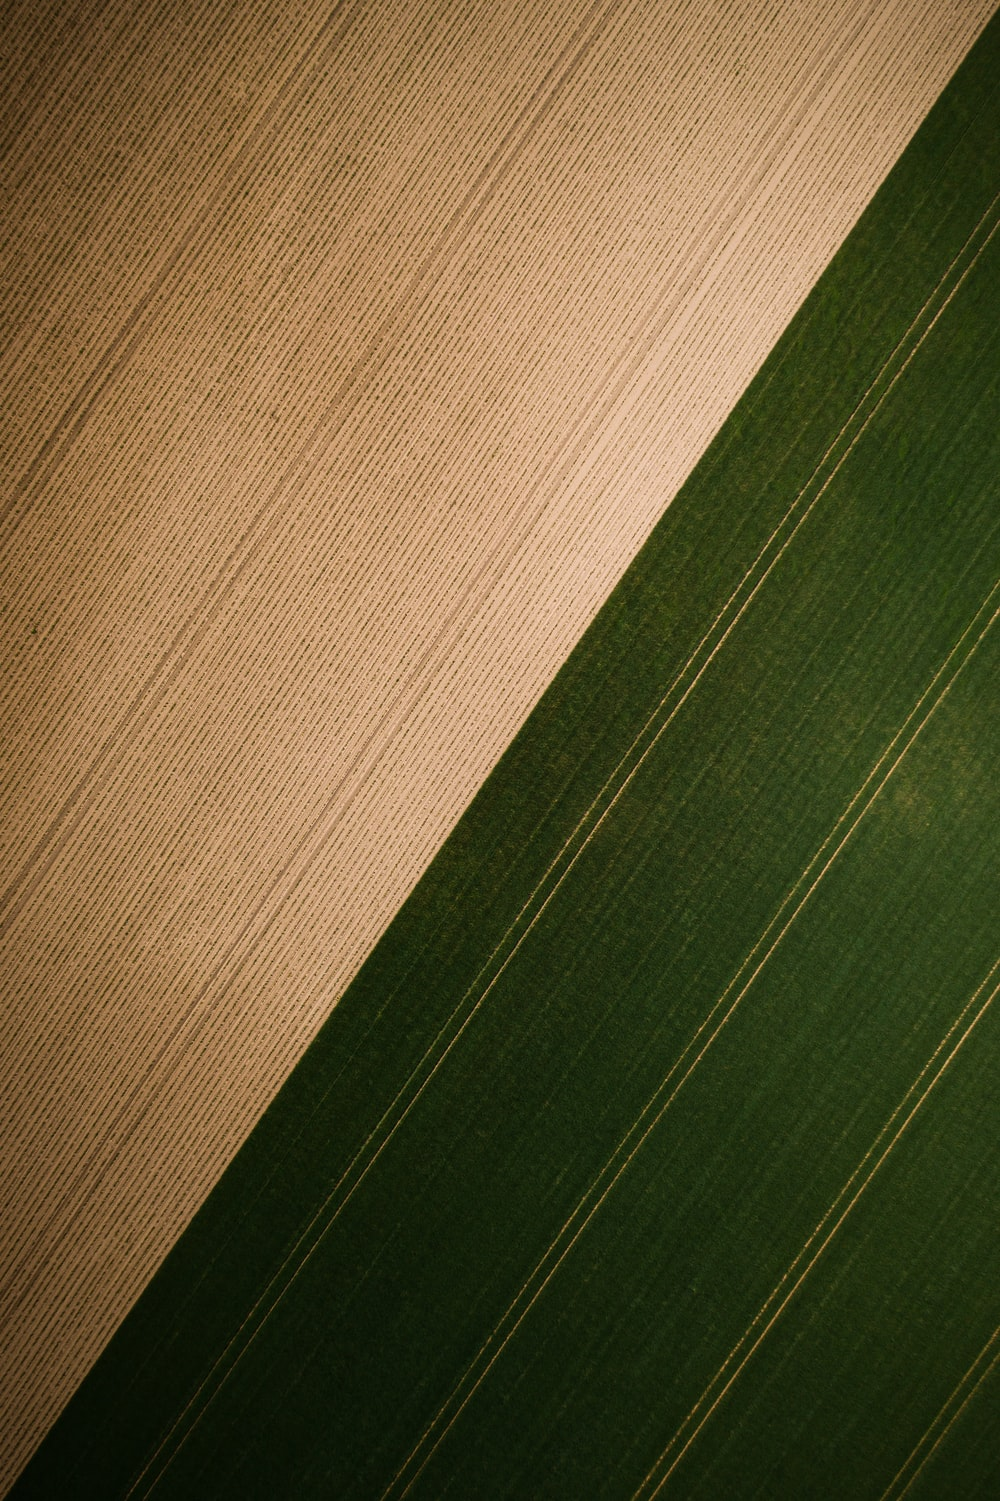 brown and green striped textile